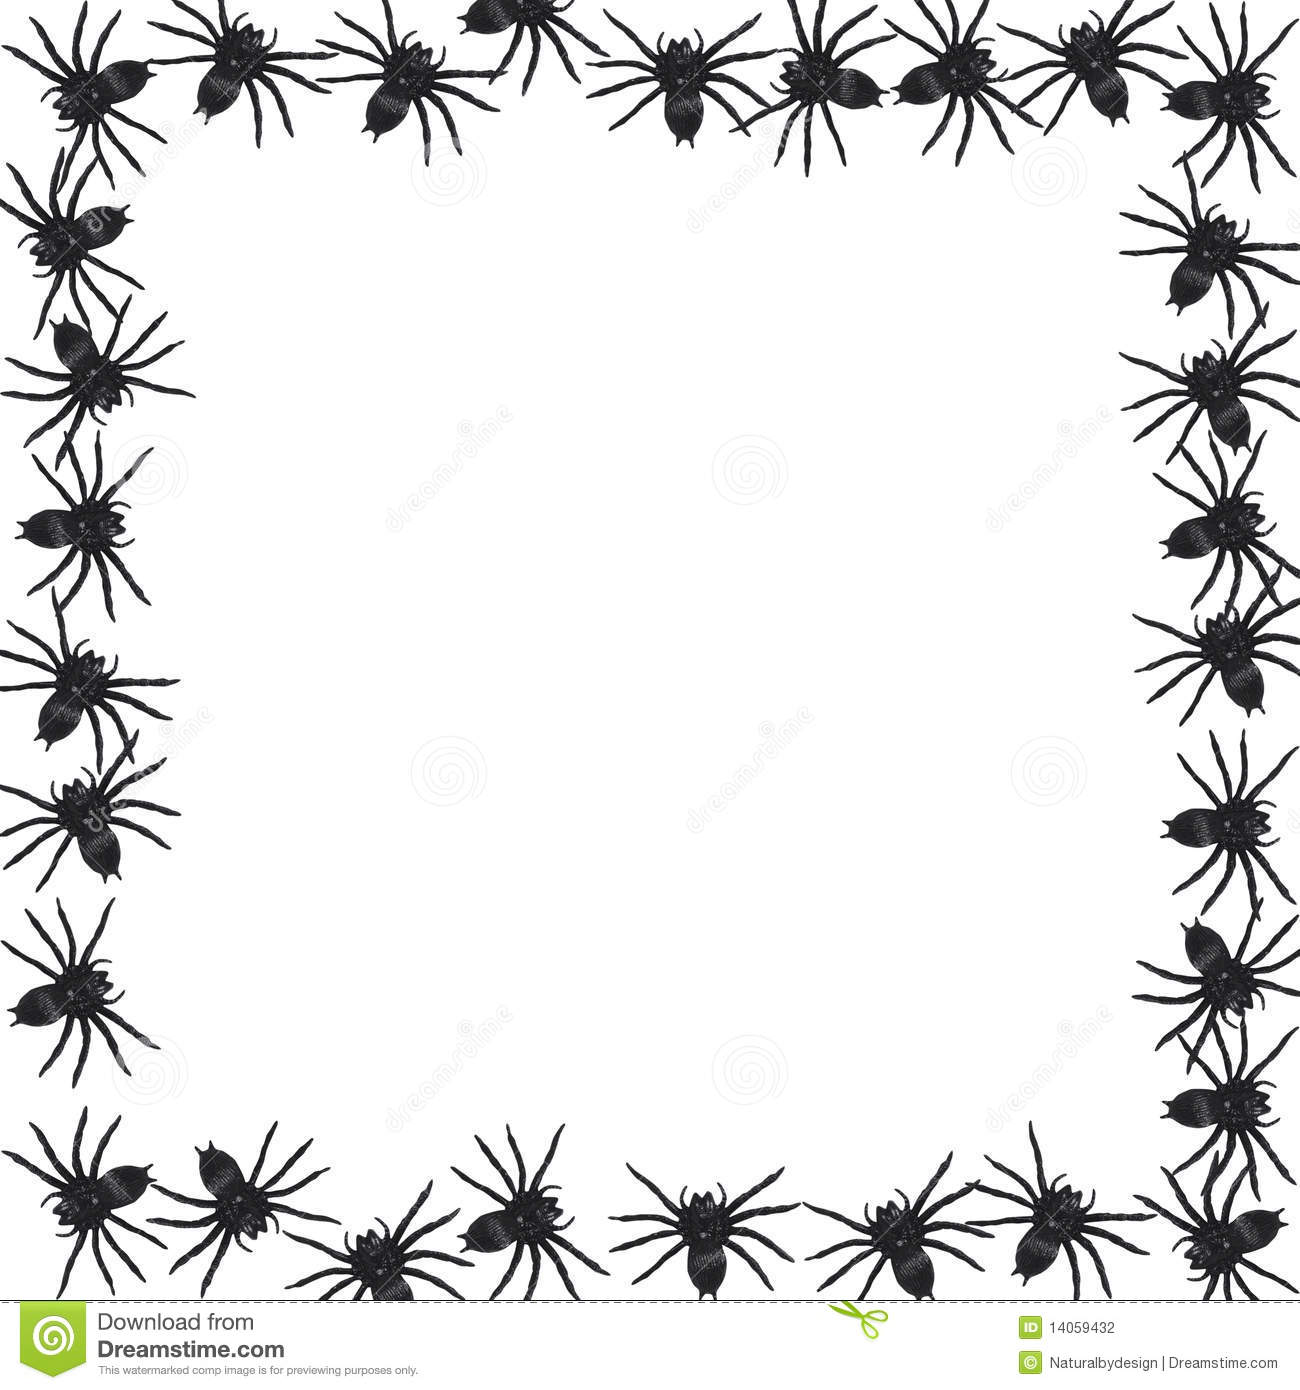 40 Best Salamander Tattoo Sketches moreover How To Draw Sharp Teeth And Have Them Make Sense additionally Halloween Background Spider Web Vector Illustration Vector 15778715 likewise Mandala Disney Princesse Blanche Neige Coloriage Dessin 18524 further Dragon Template. on scary evil animal